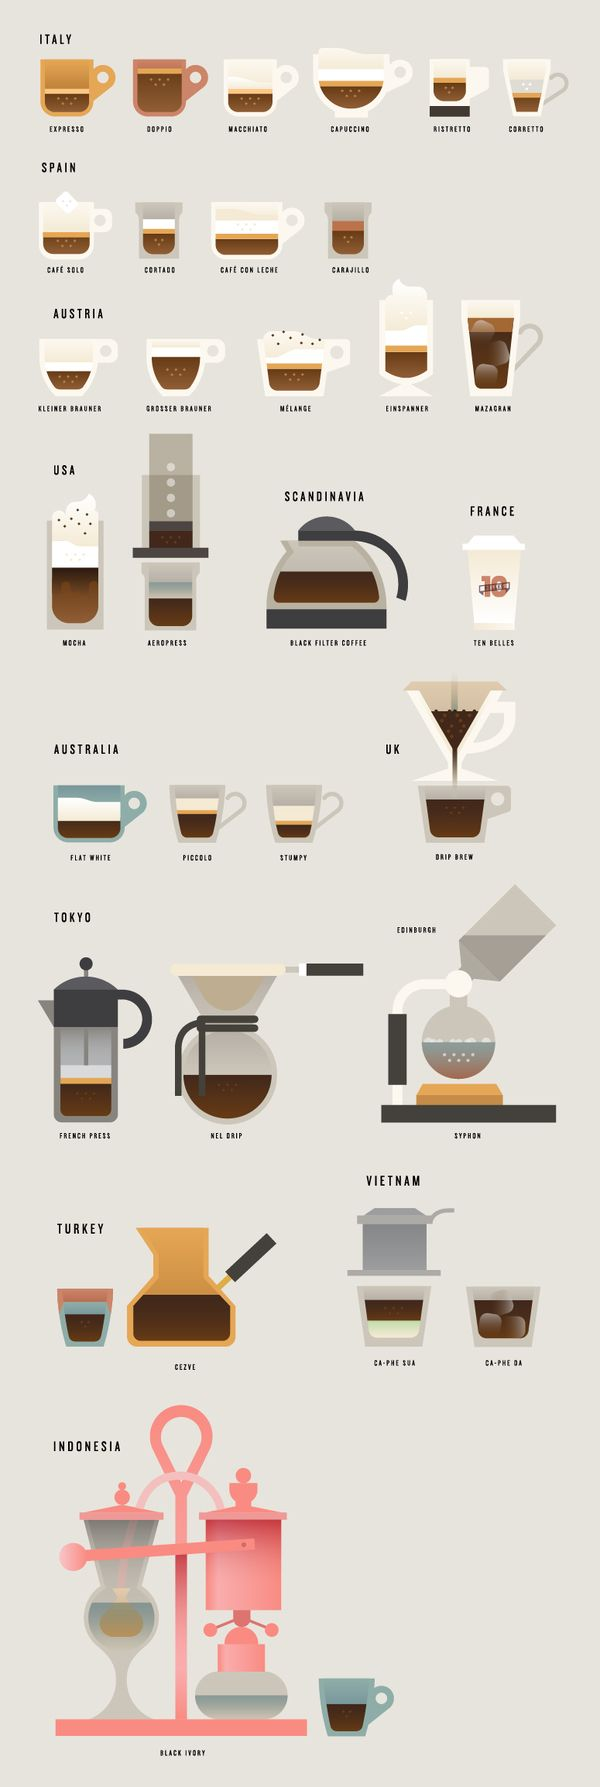 The amazing and differing world of coffee. One of my favorite things to try when going to a new country!